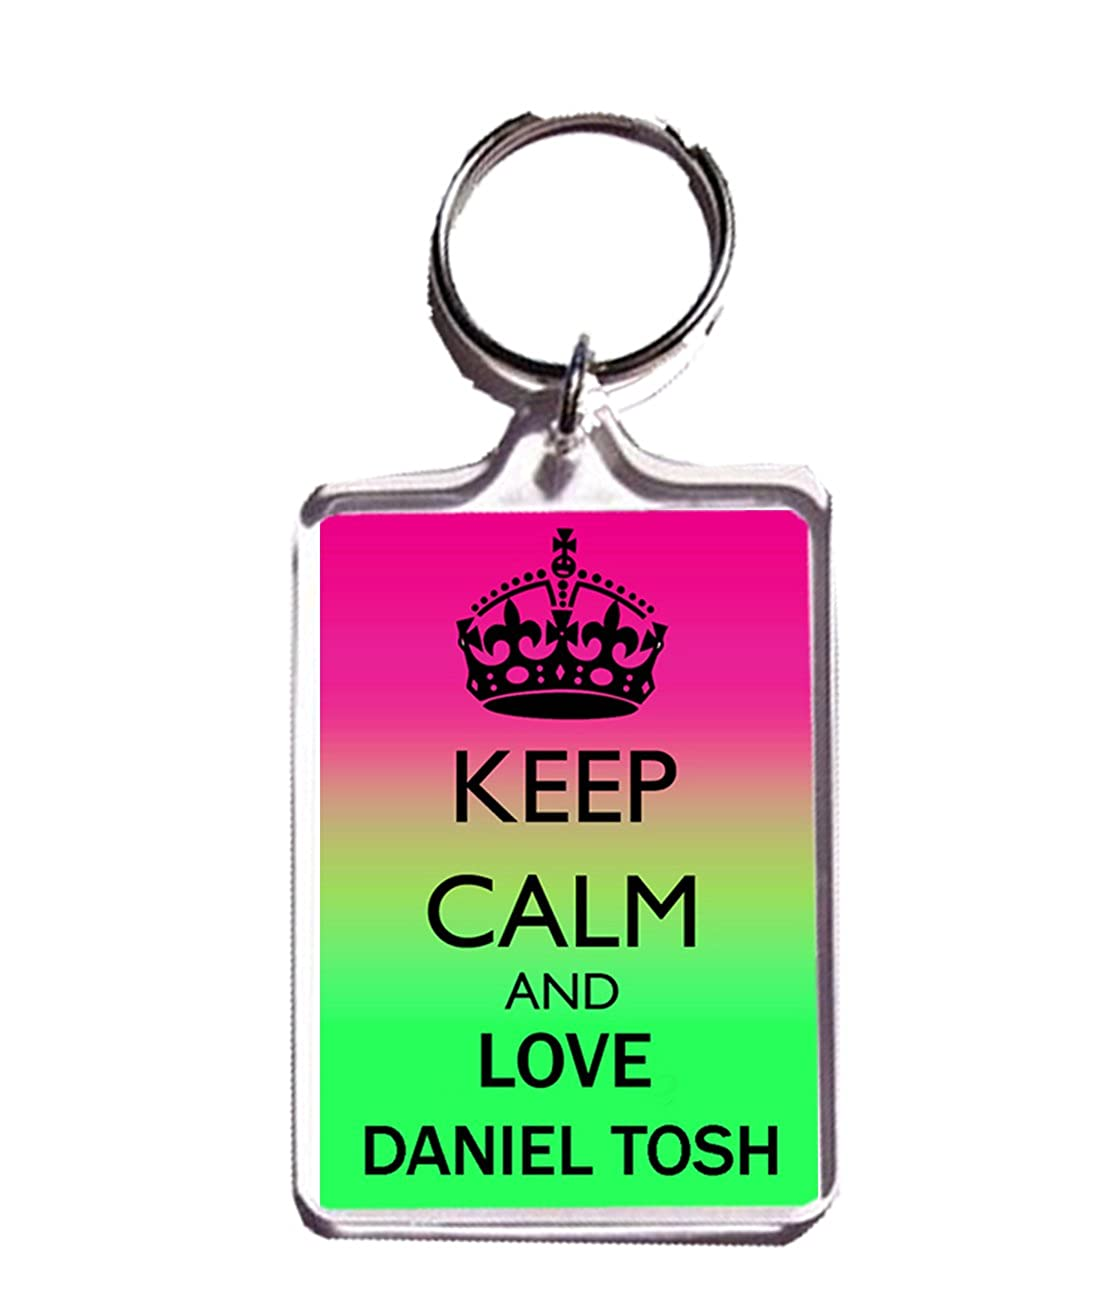 KEEP CALM AND LOVE DANIEL TOSH LLAVERO: Amazon.es: Ropa y ...